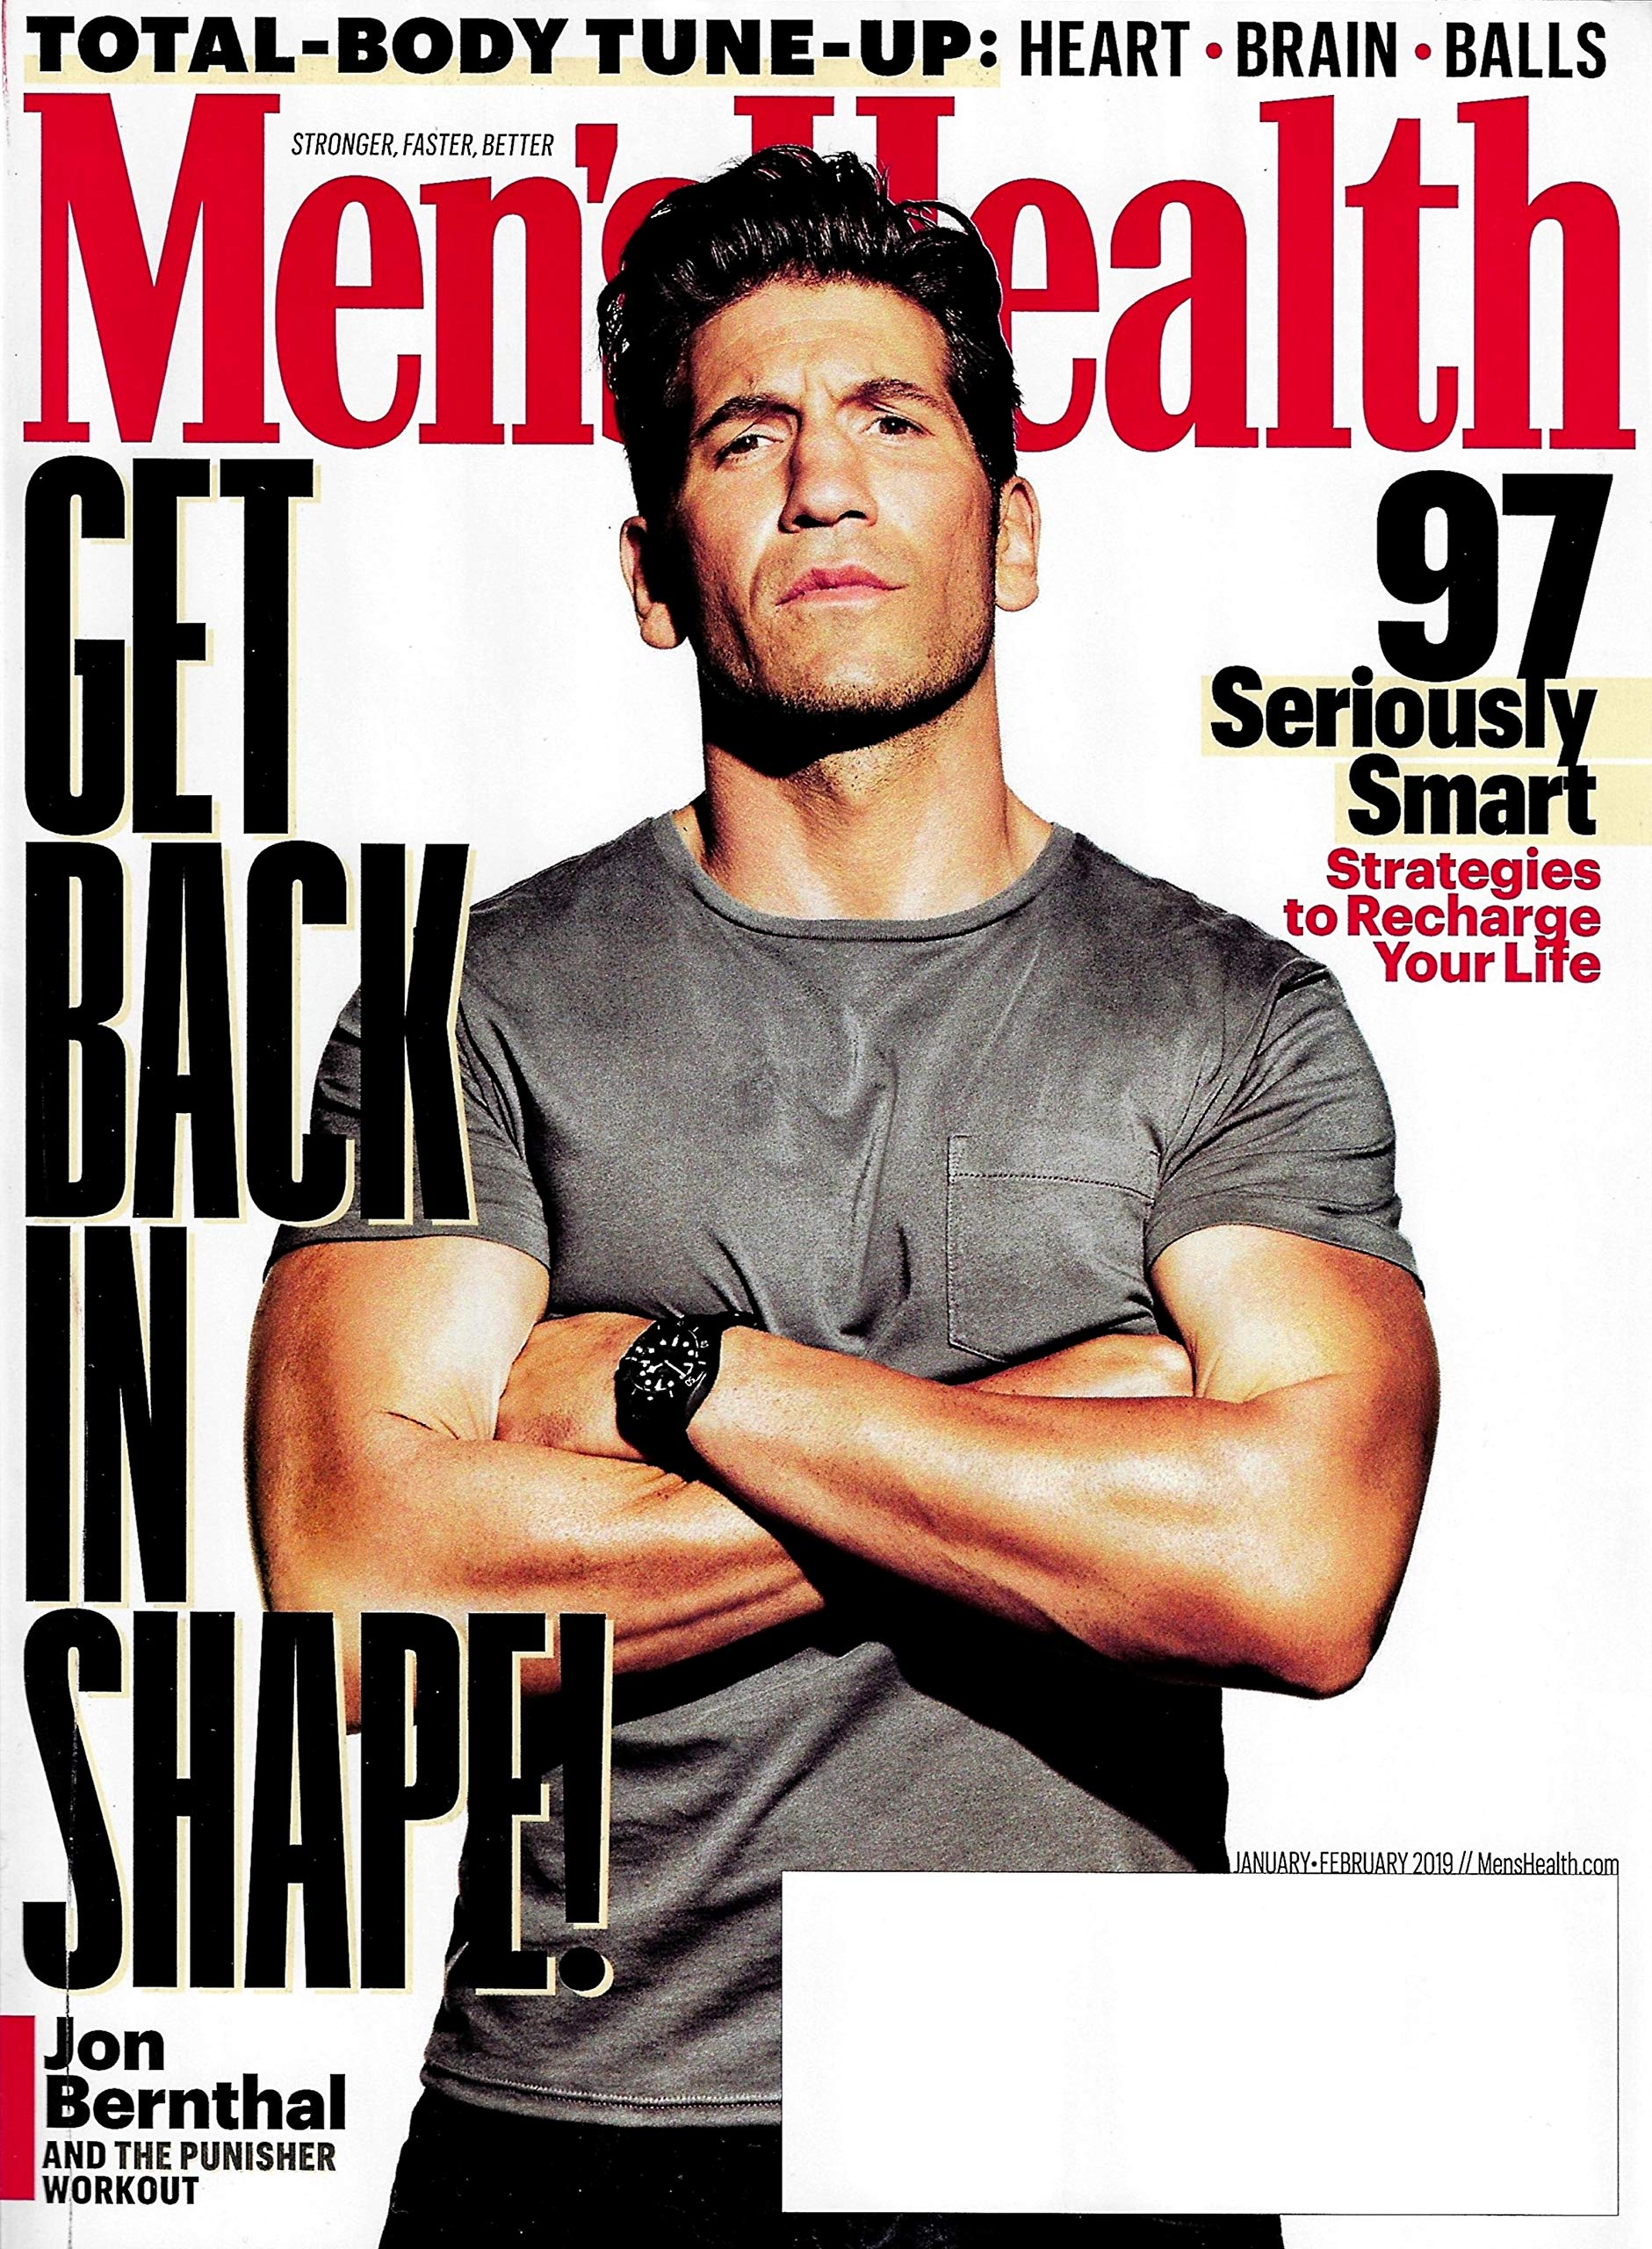 Mens Health Magazine Januaryfebruary 2019 Jon Bernthal And The